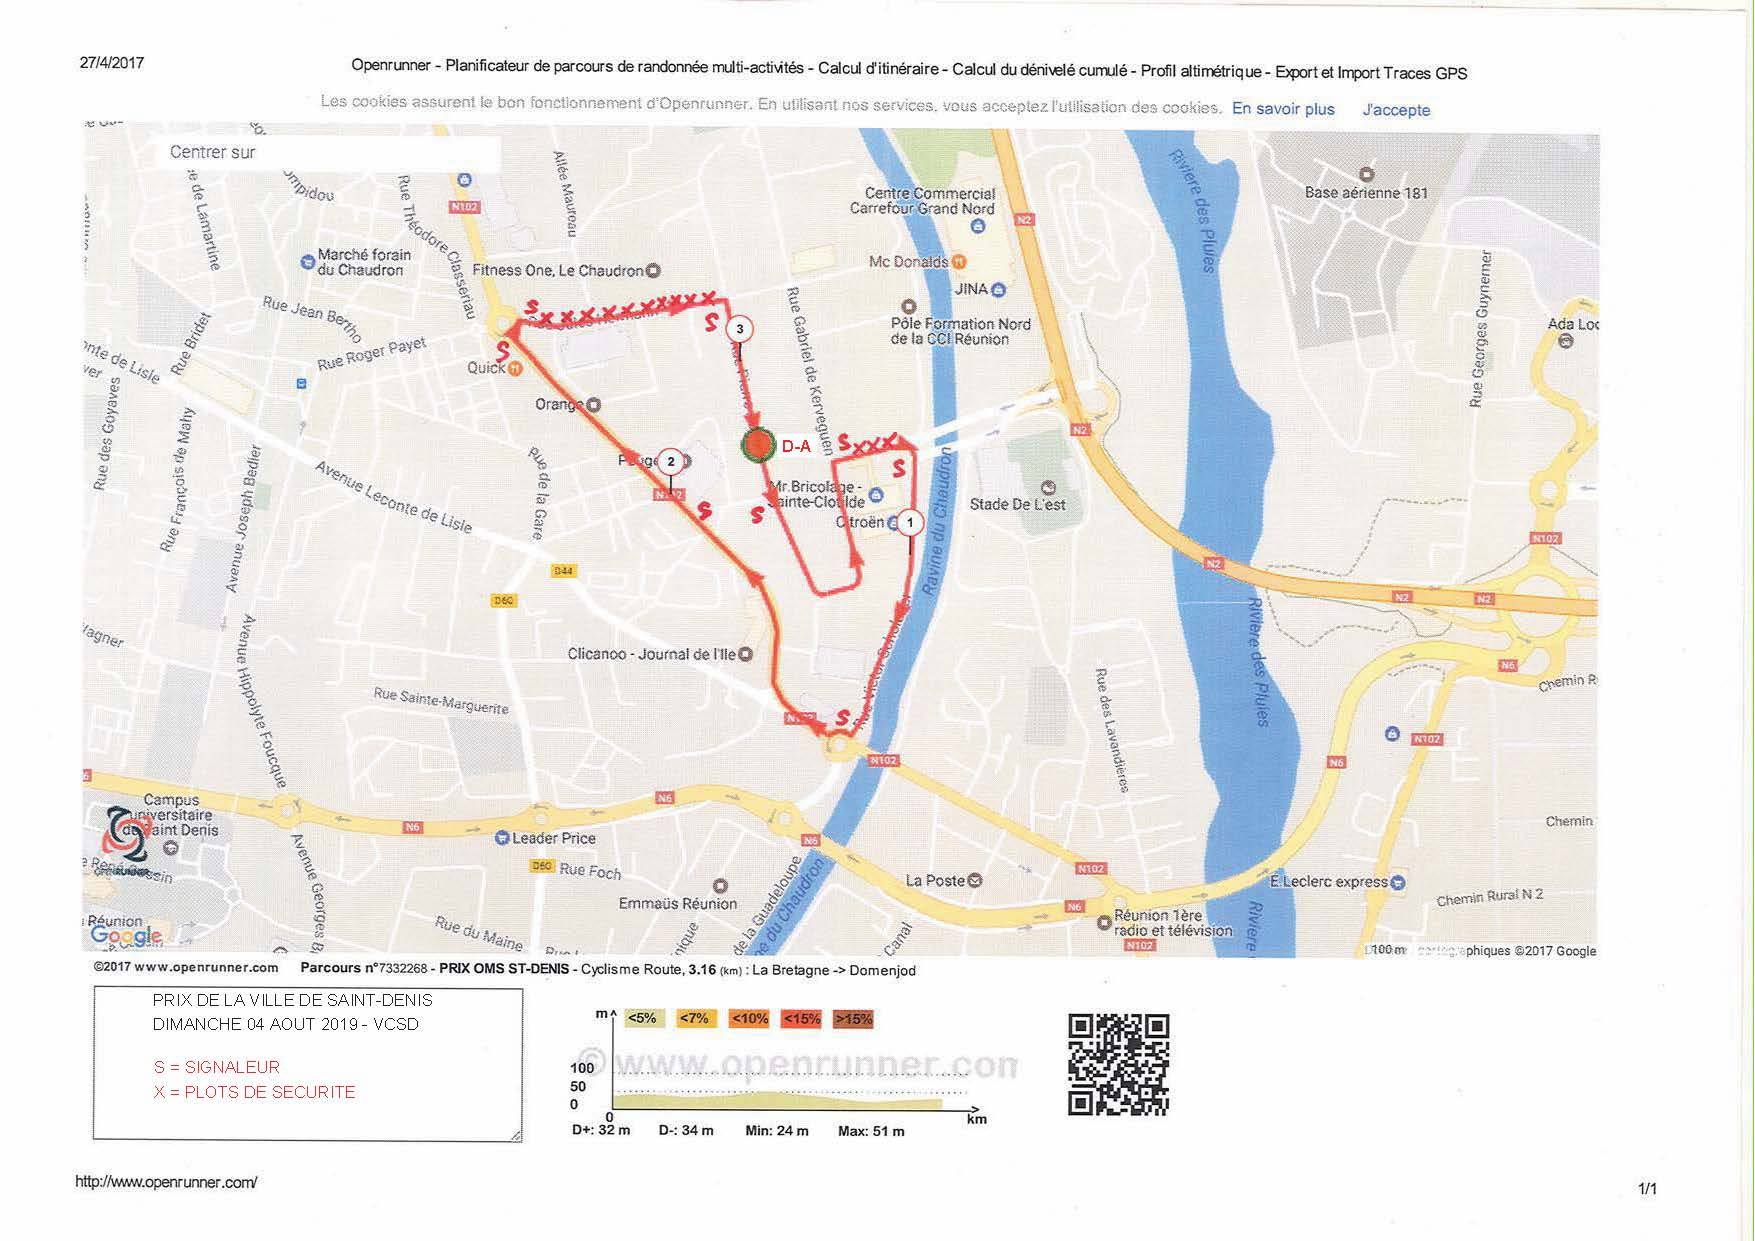 plan gp ville saint denis 04 08 2019 4f97f